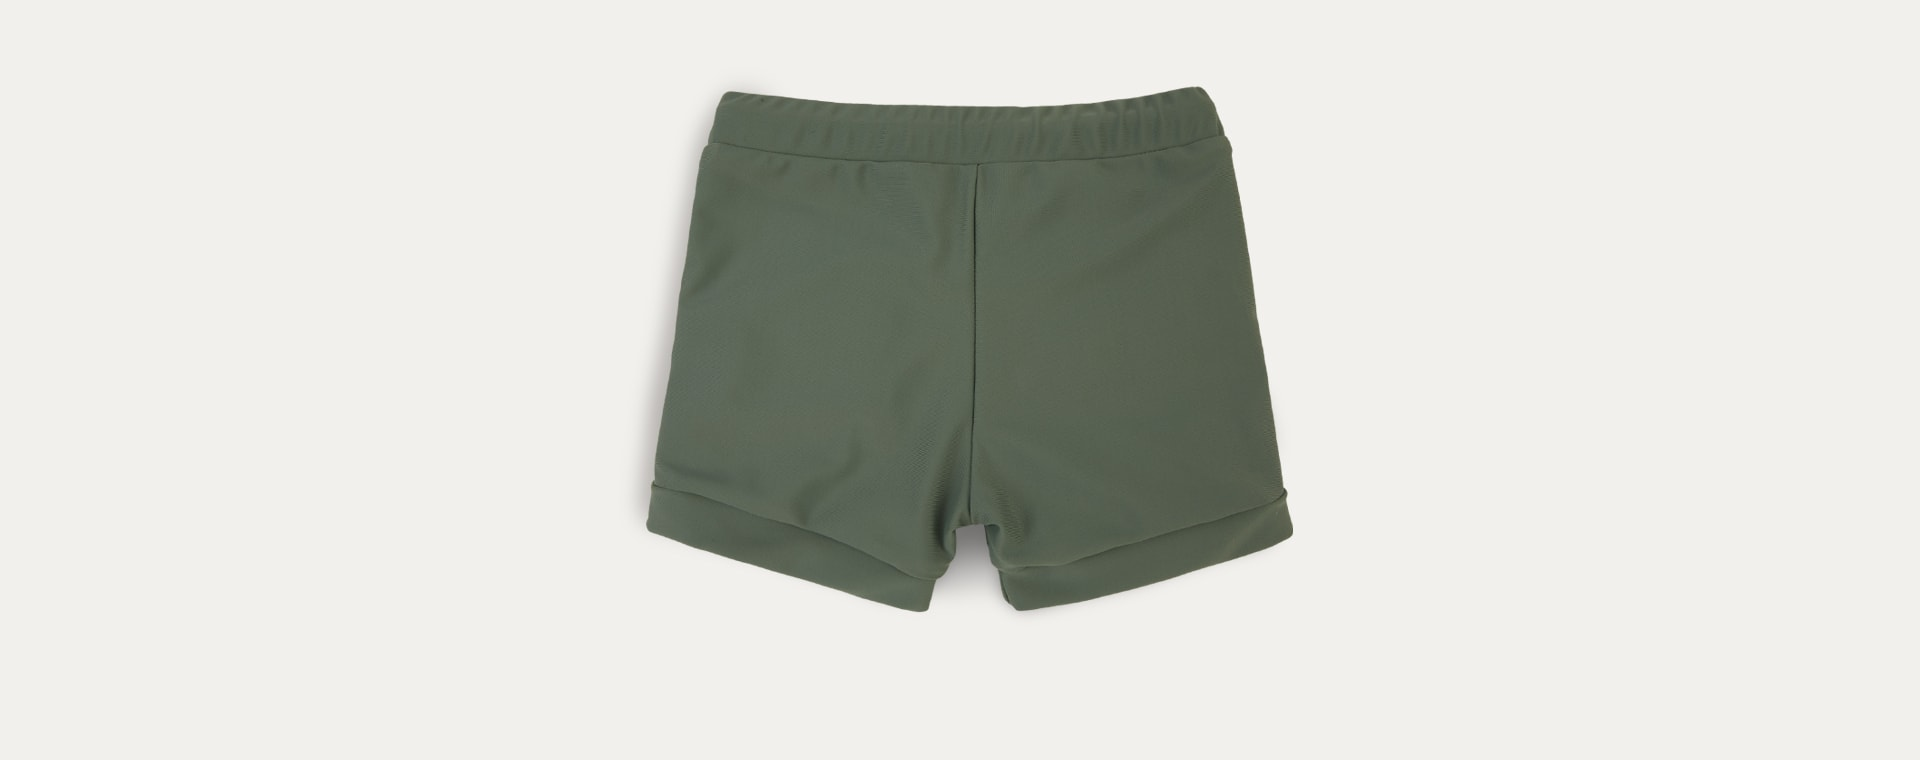 Olive KIDLY Label Recycled Swim Trunks